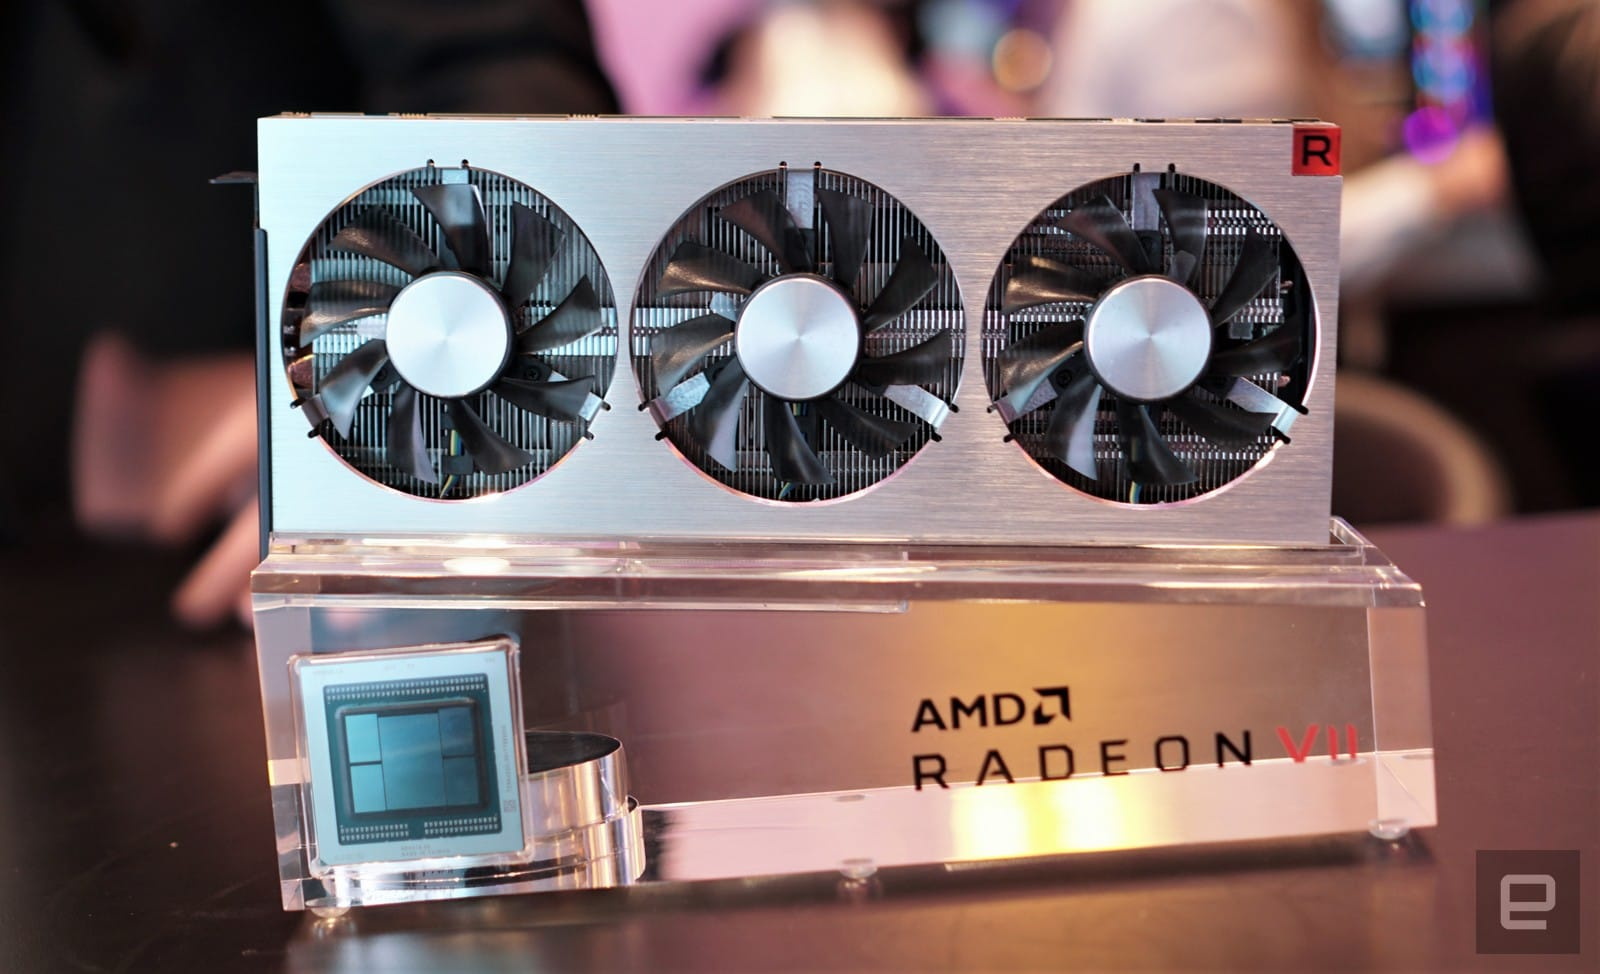 AMD's CEO and CTO on Radeon VII, ray tracing and beyond